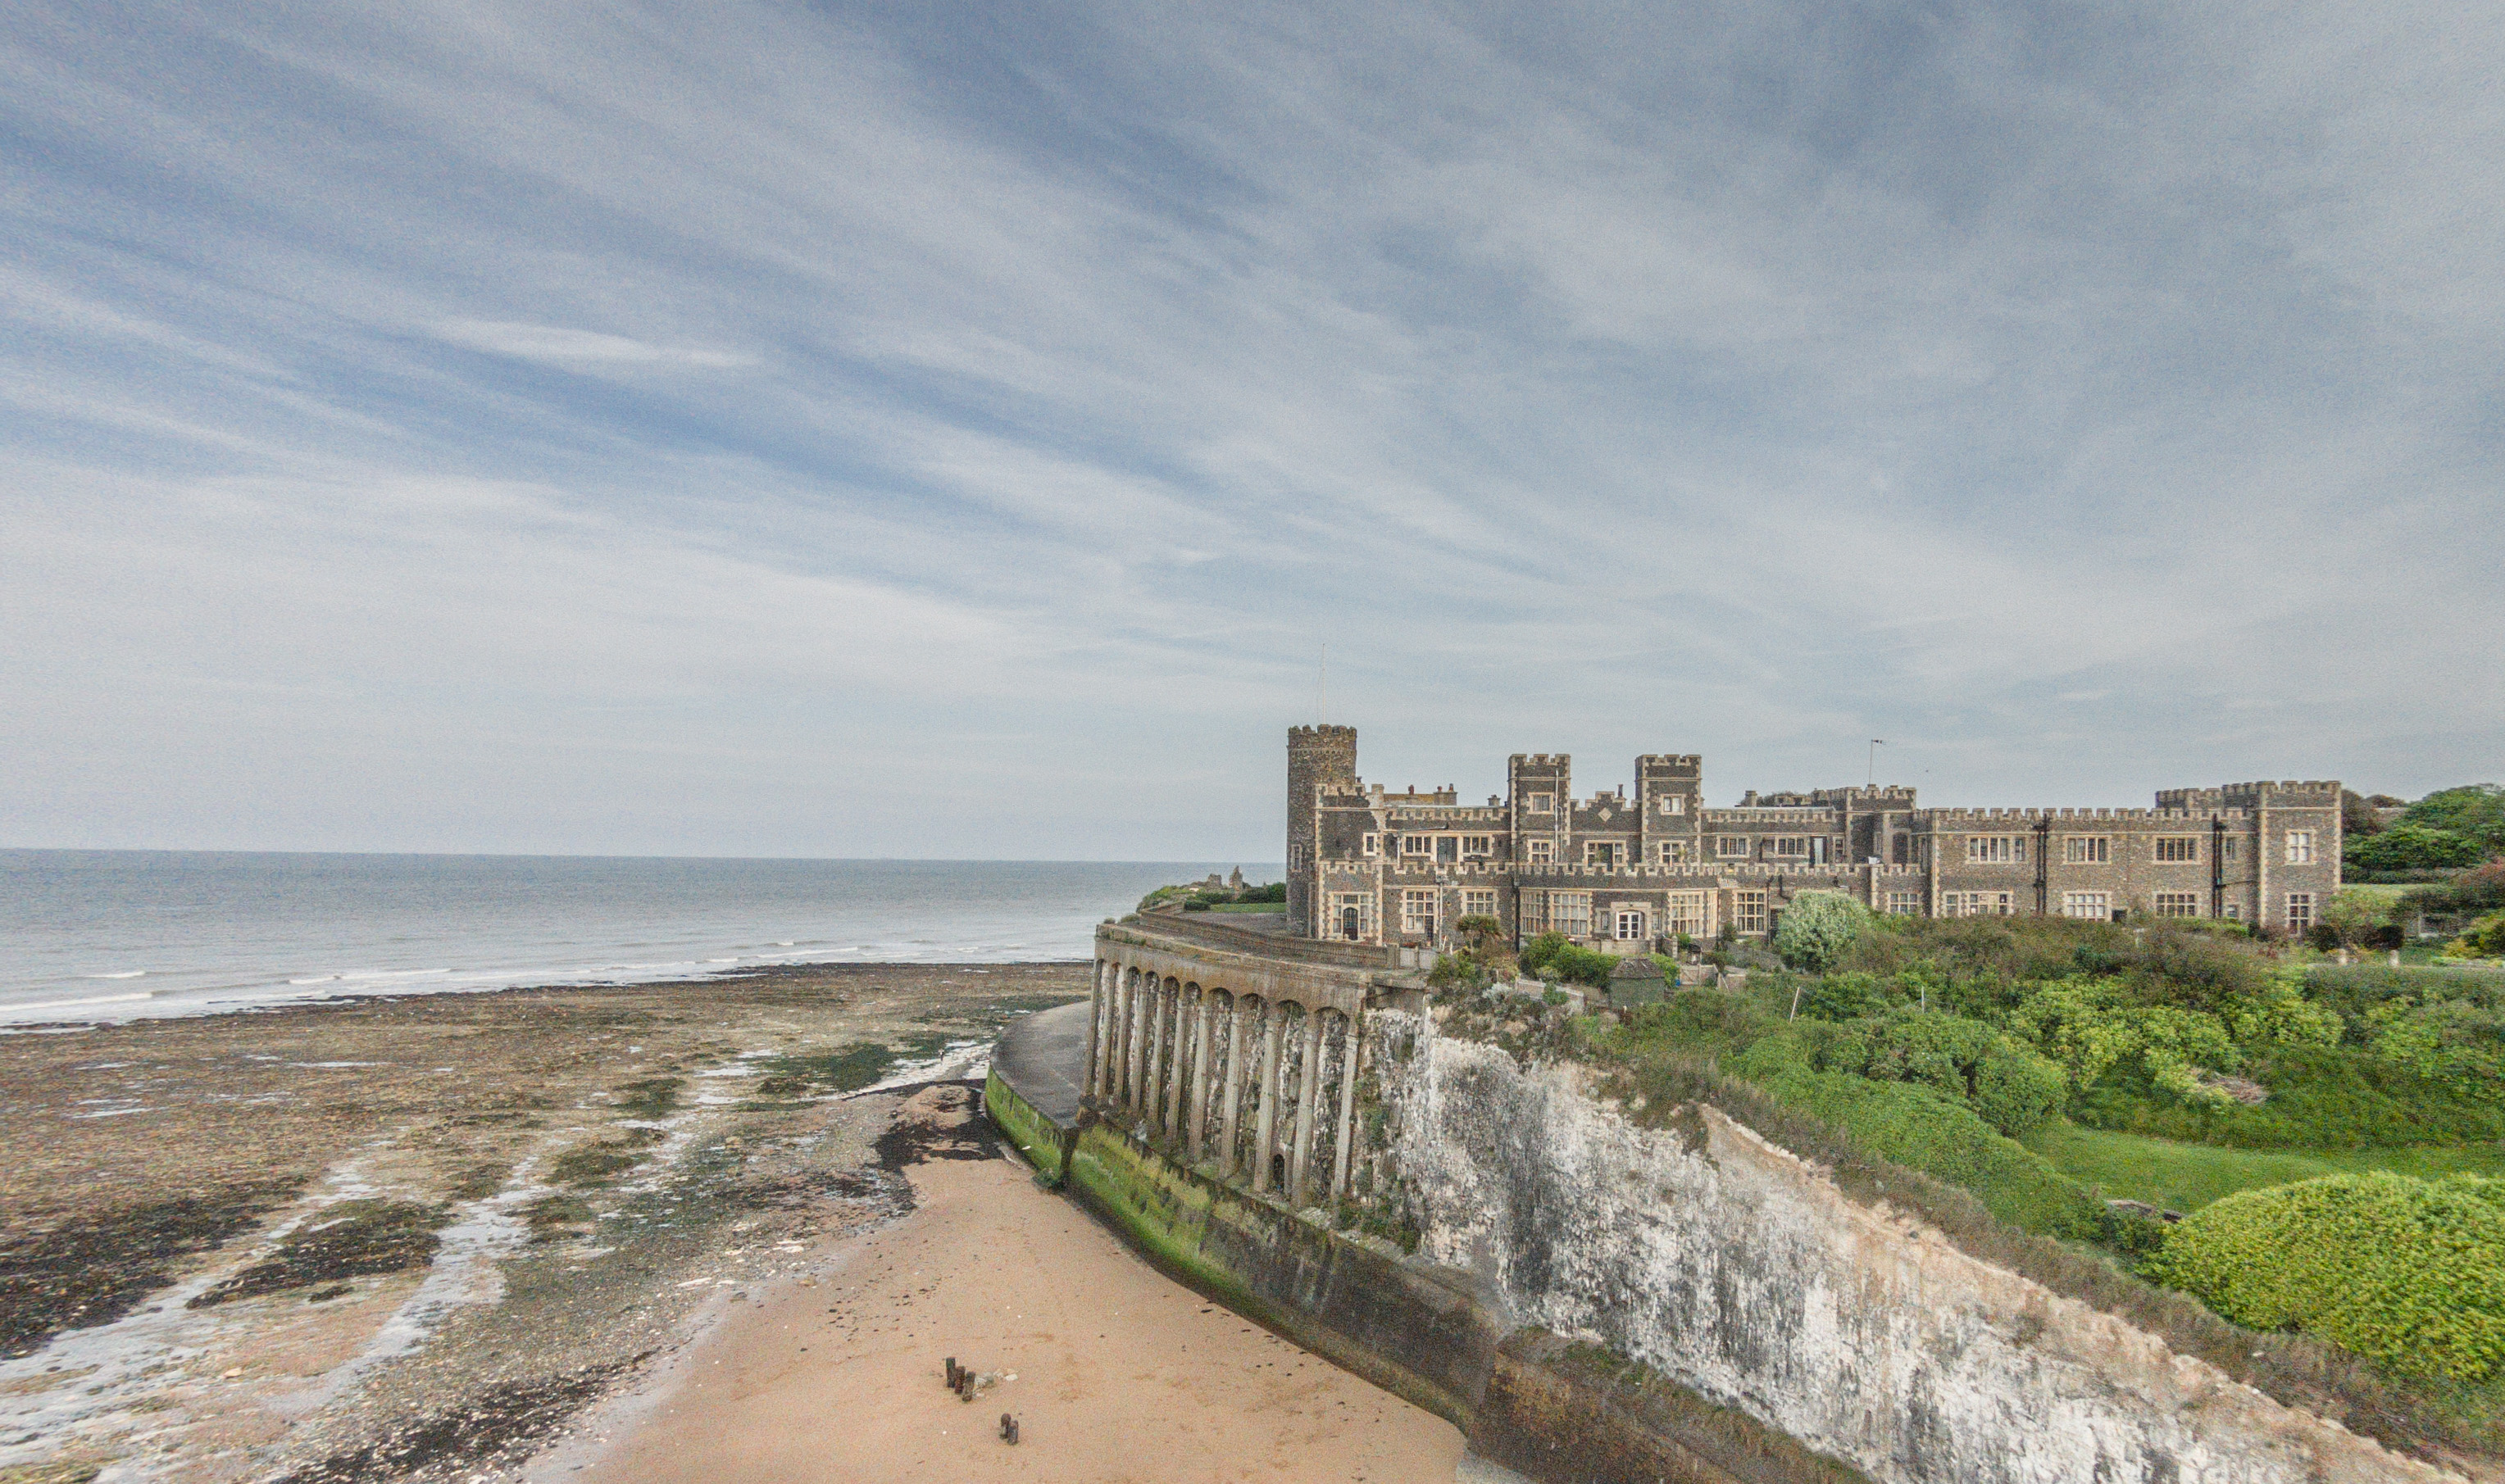 Kingsgate Castle